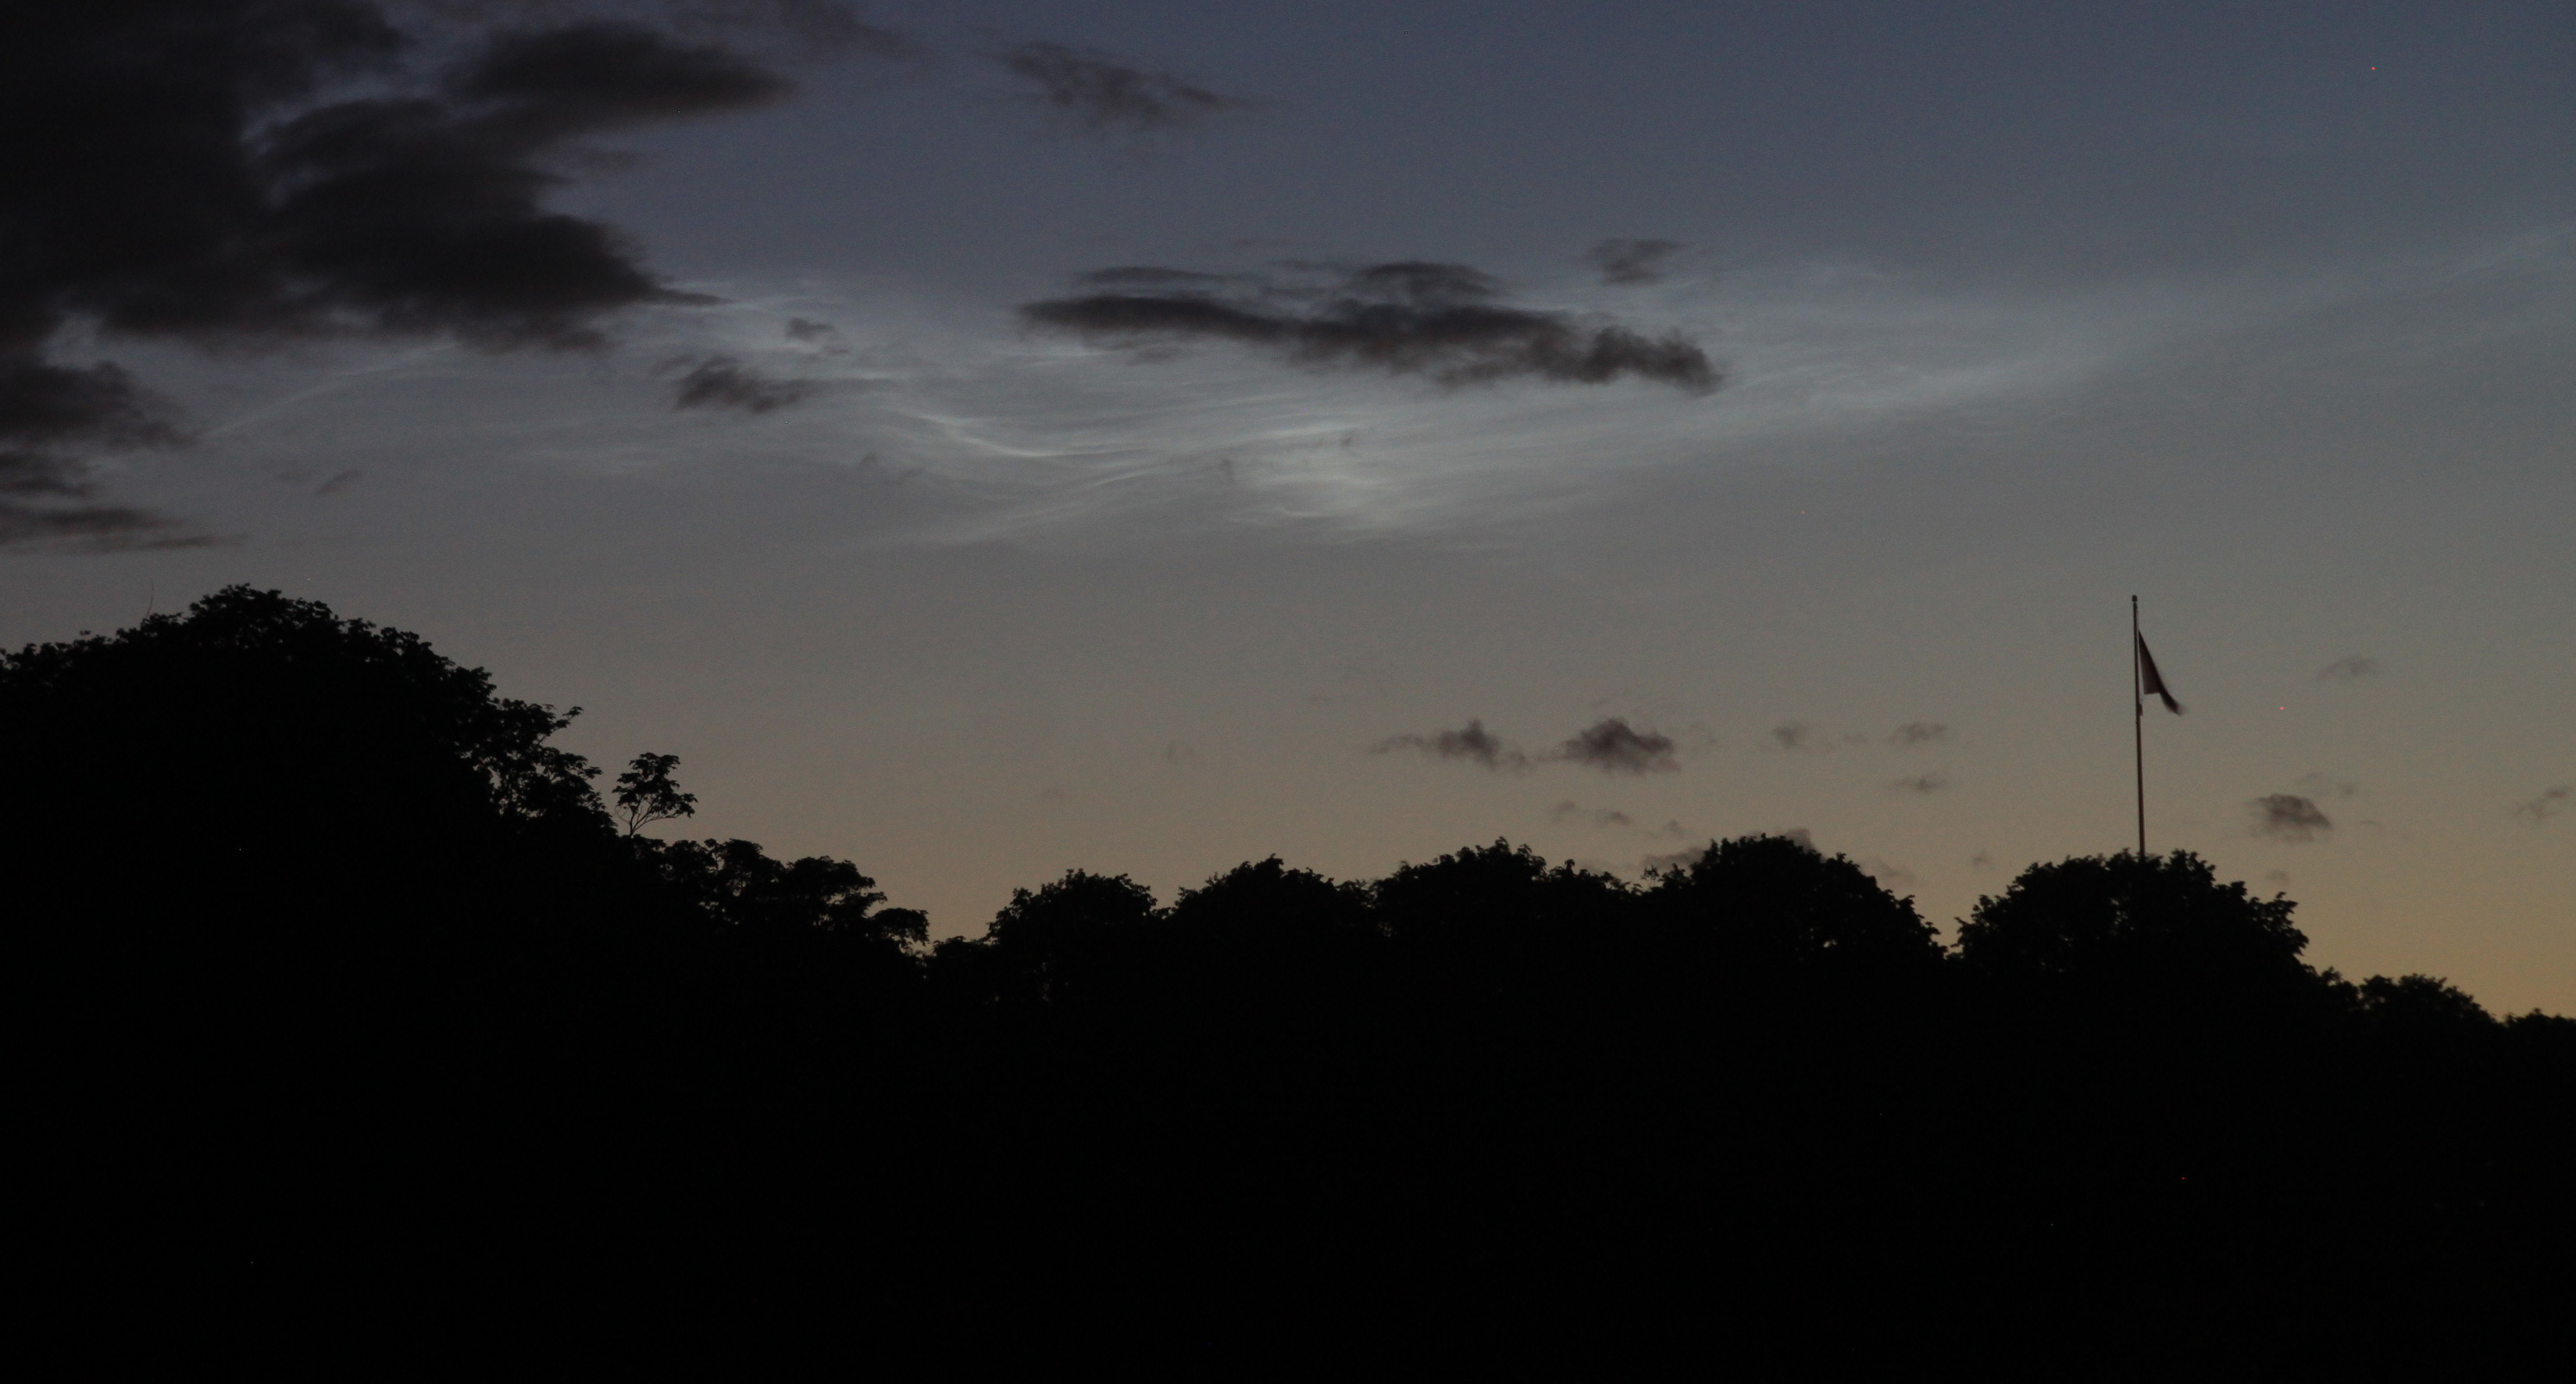 nlc21-22jun2020-resize.jpg